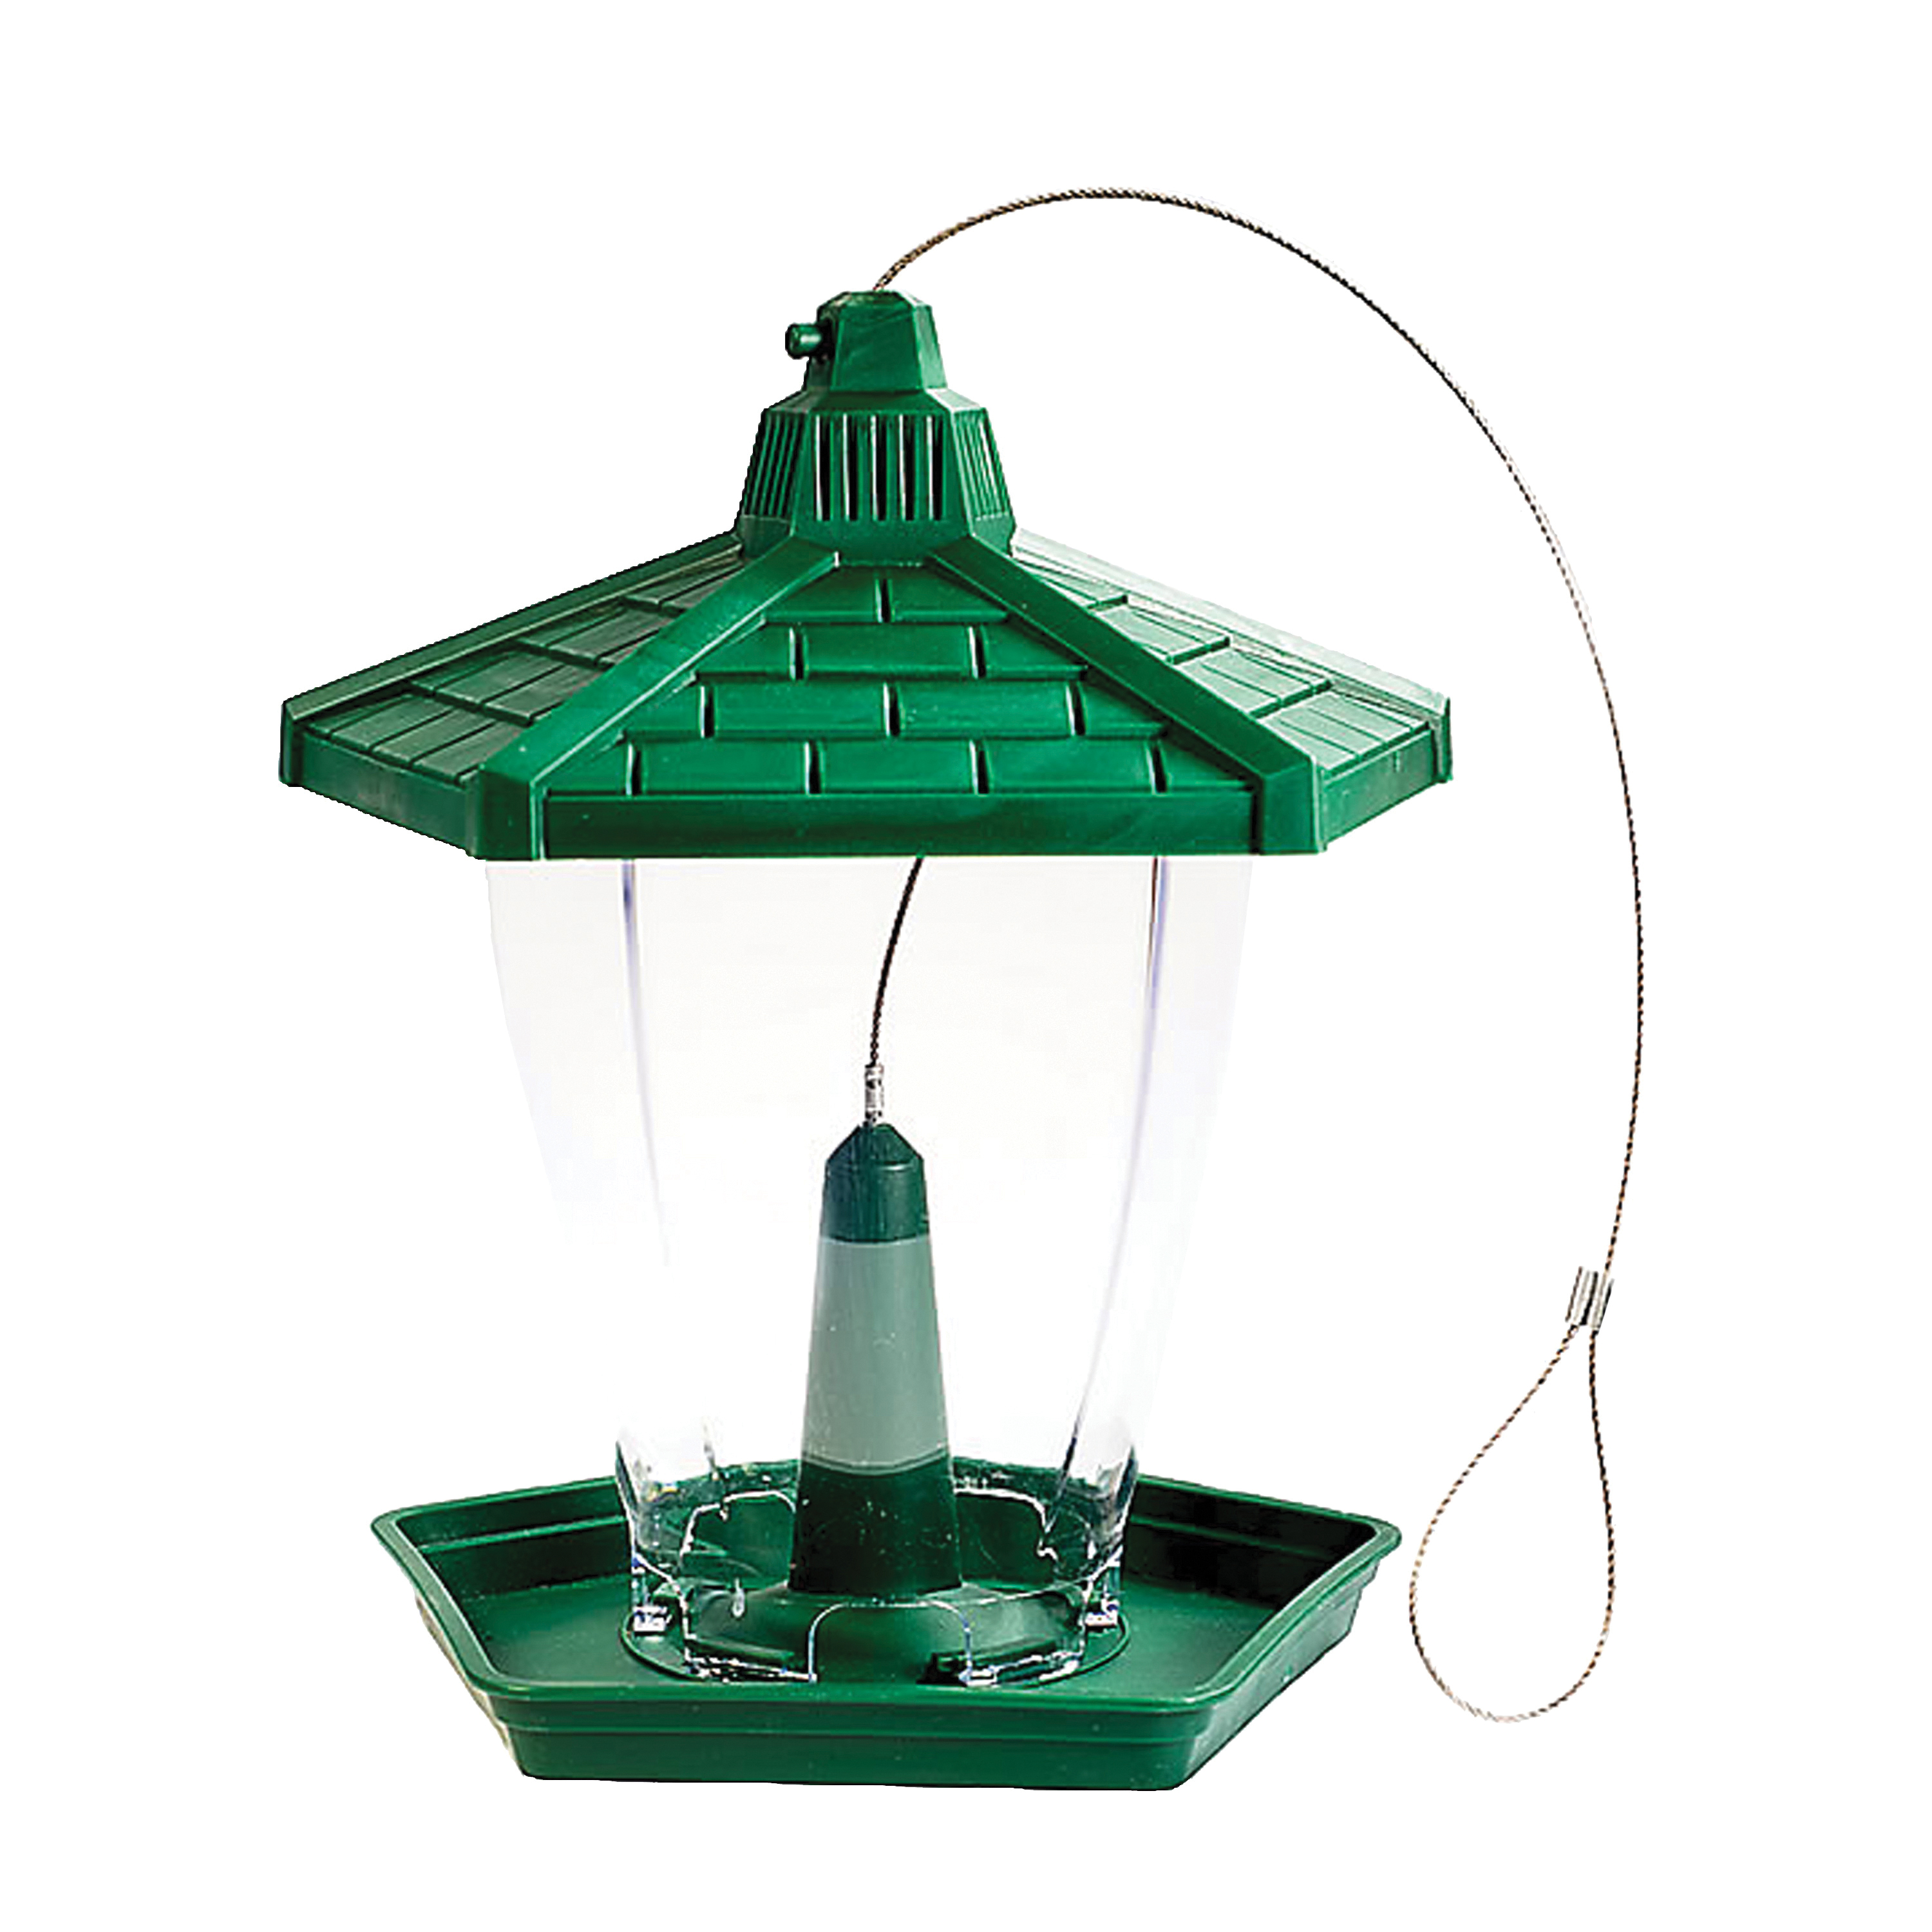 Picture of Perky-Pet HF950 Wild Bird Feeder, Perch, 1.25 lb, Plastic, Green, Hanging Mounting